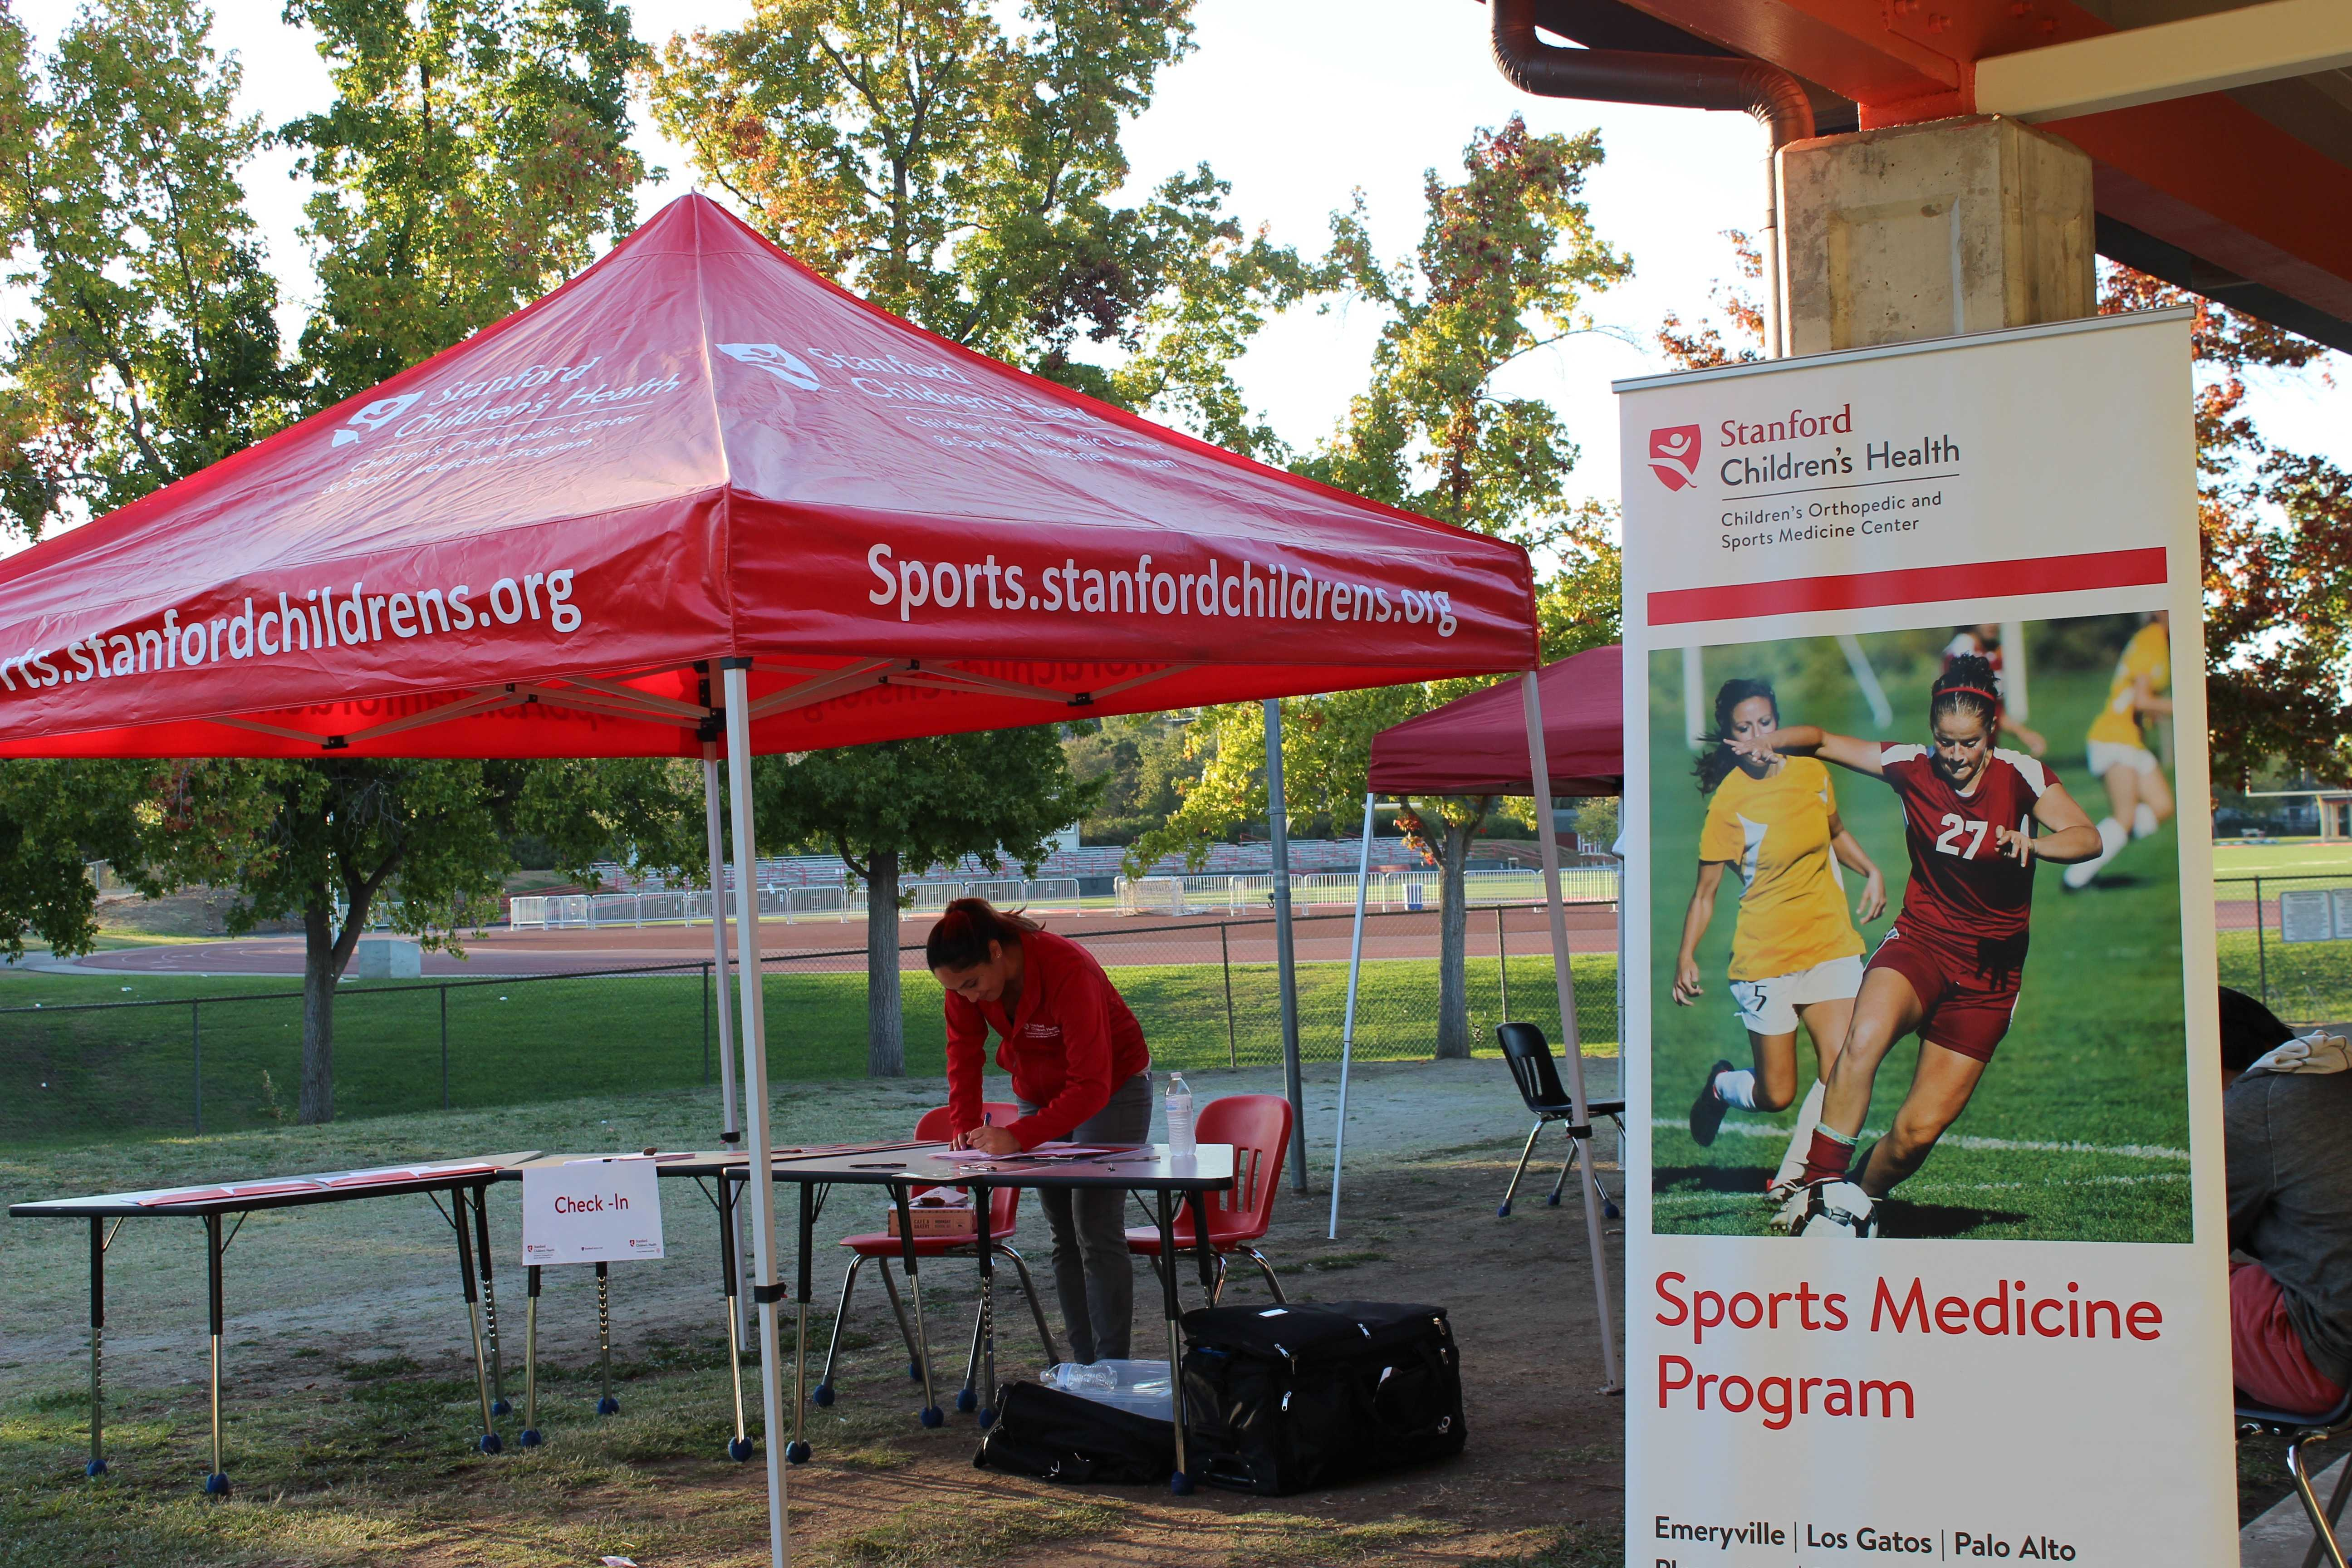 A stanford Athletic Supervisor mans the check-in desk for Palo Alto student athletes receiving their physicals through the Young Athletes Academy program. Photo by Bianca Al-Shamari.